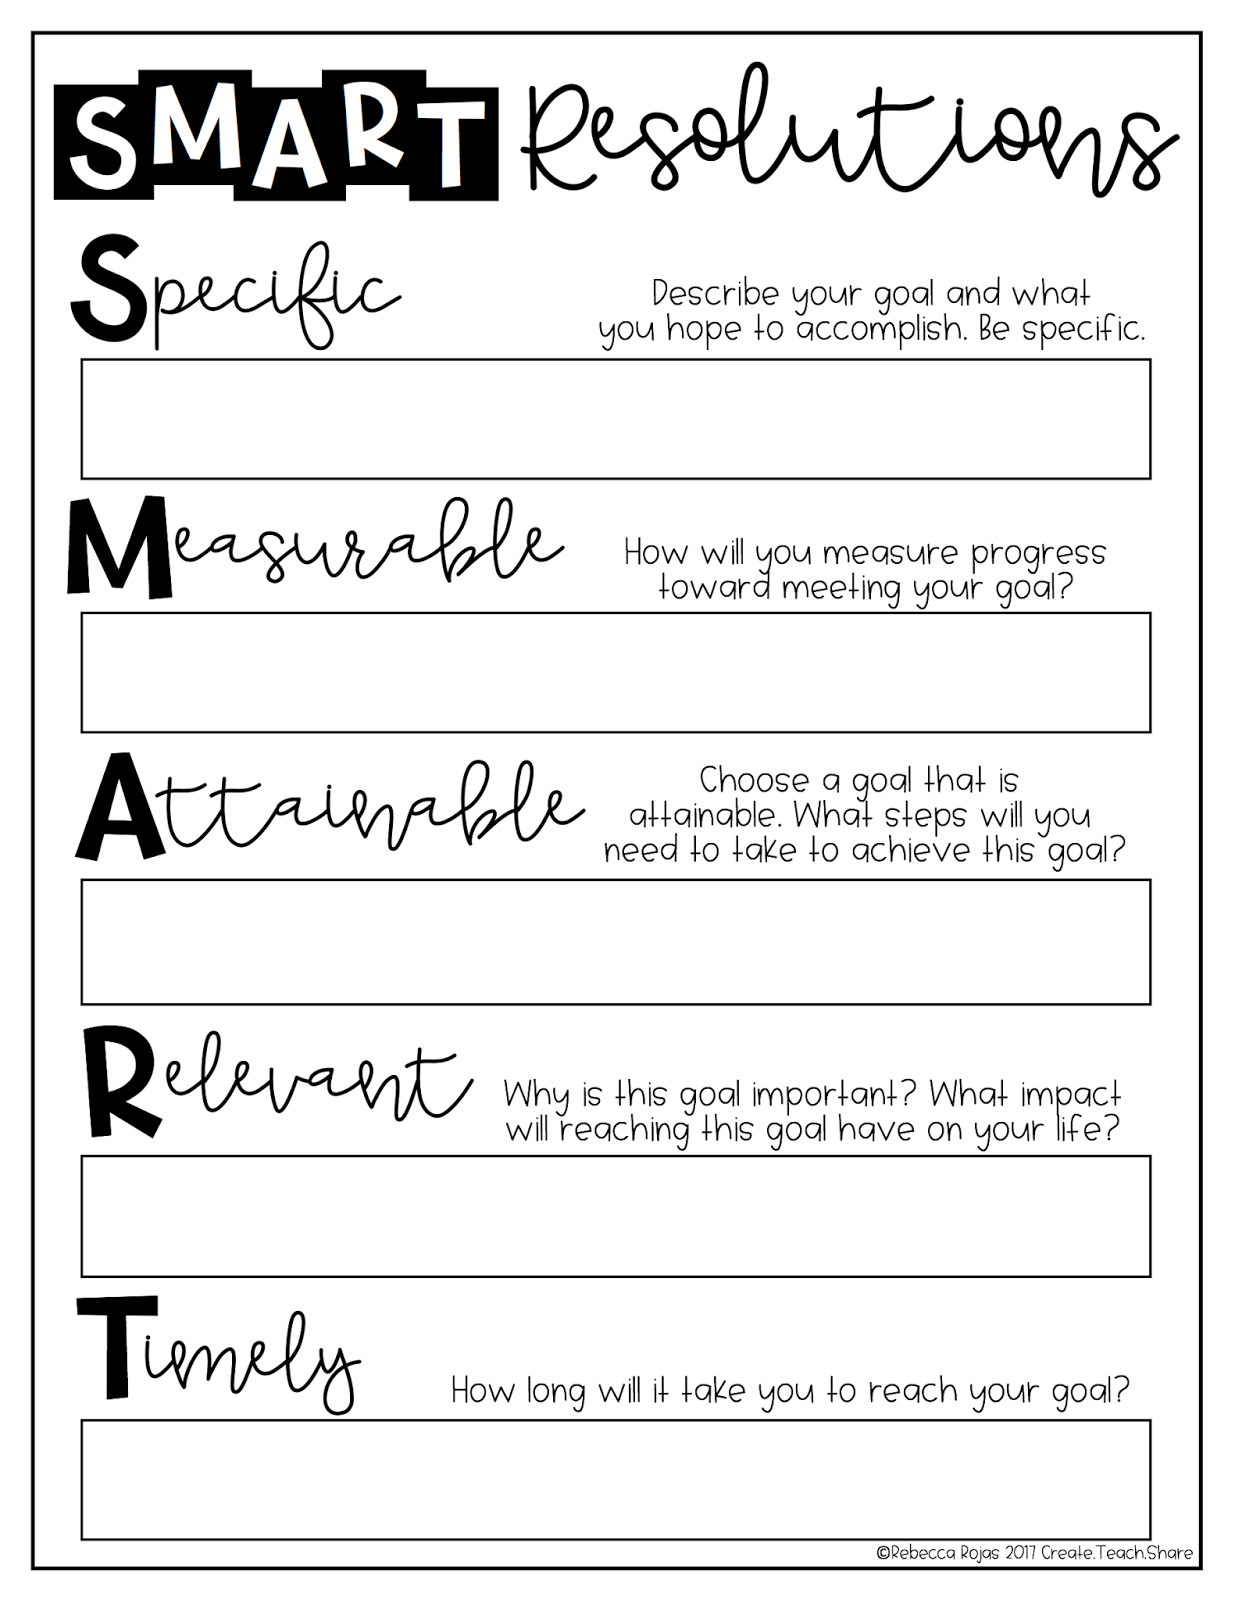 Writing Smart Resolutions For The New Year